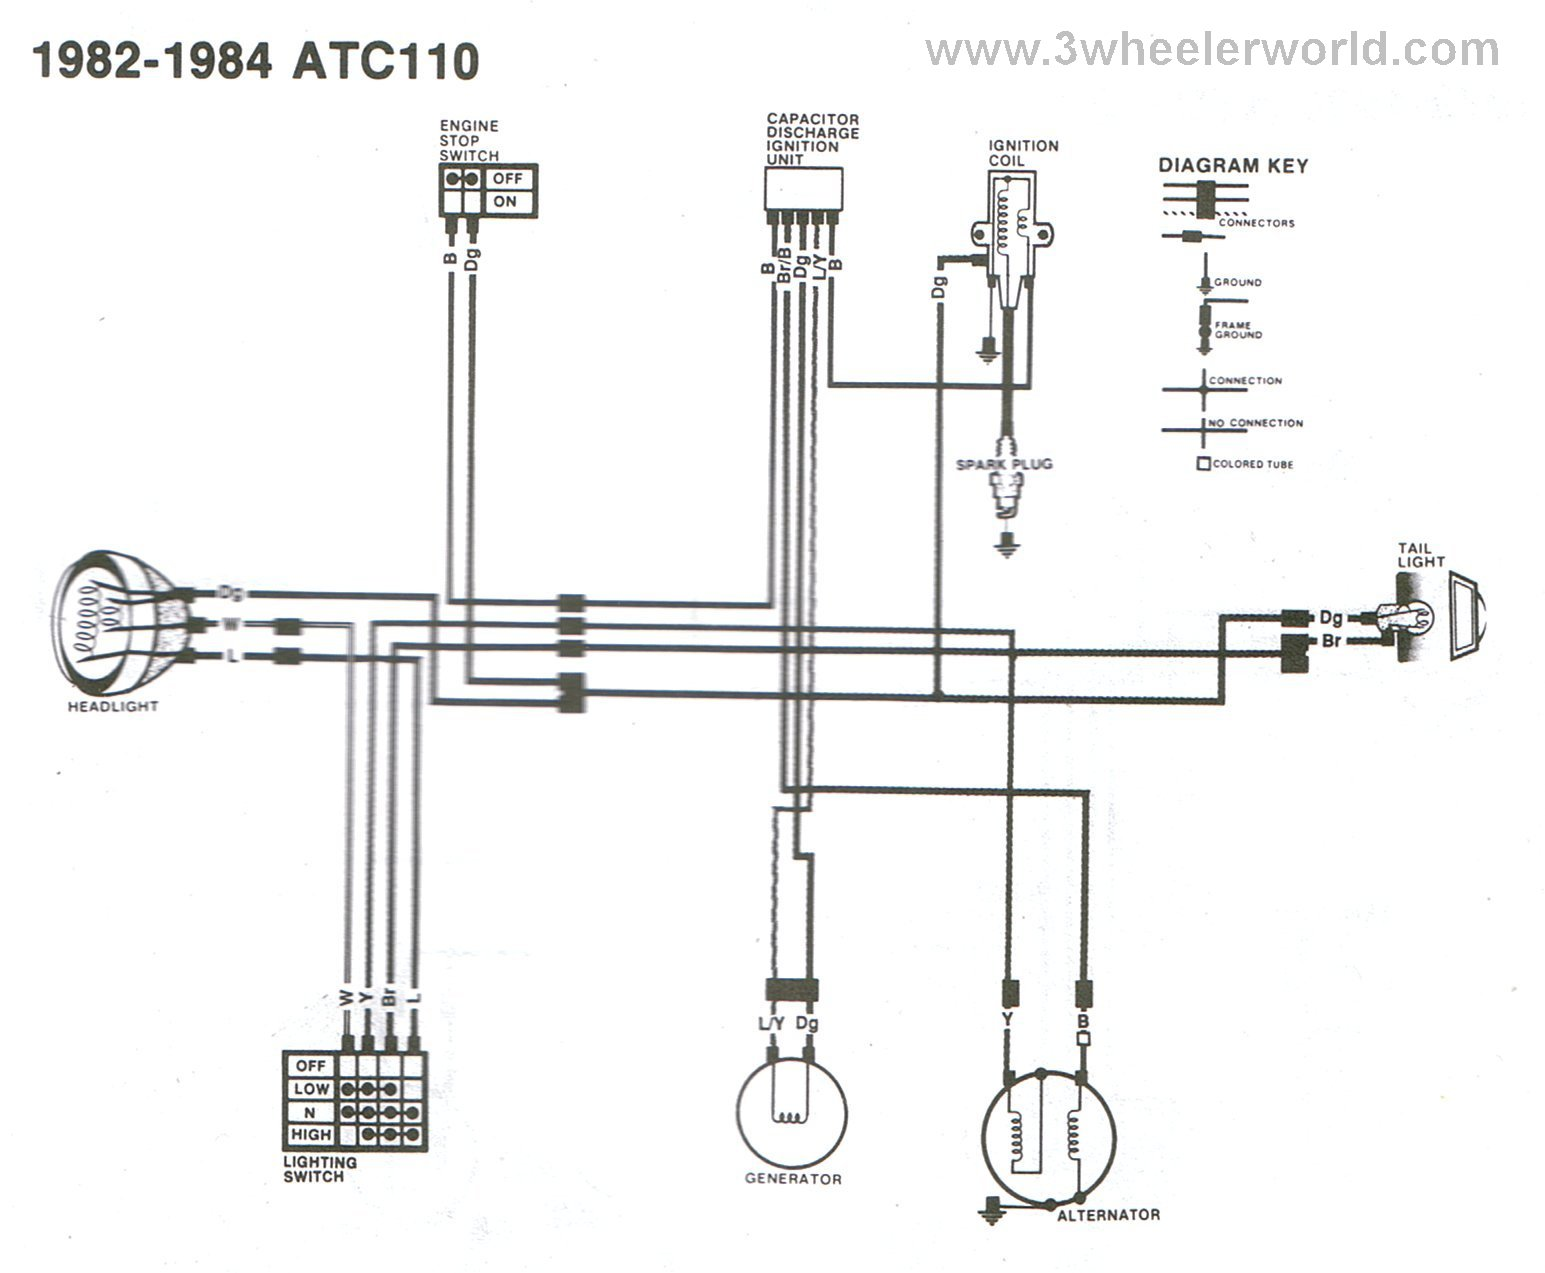 3 Wheeler World Tech Help Honda Wiring Diagrams 79 Chevy Starter Diagram Get Free Image About Atc110 1982 Thru 1984